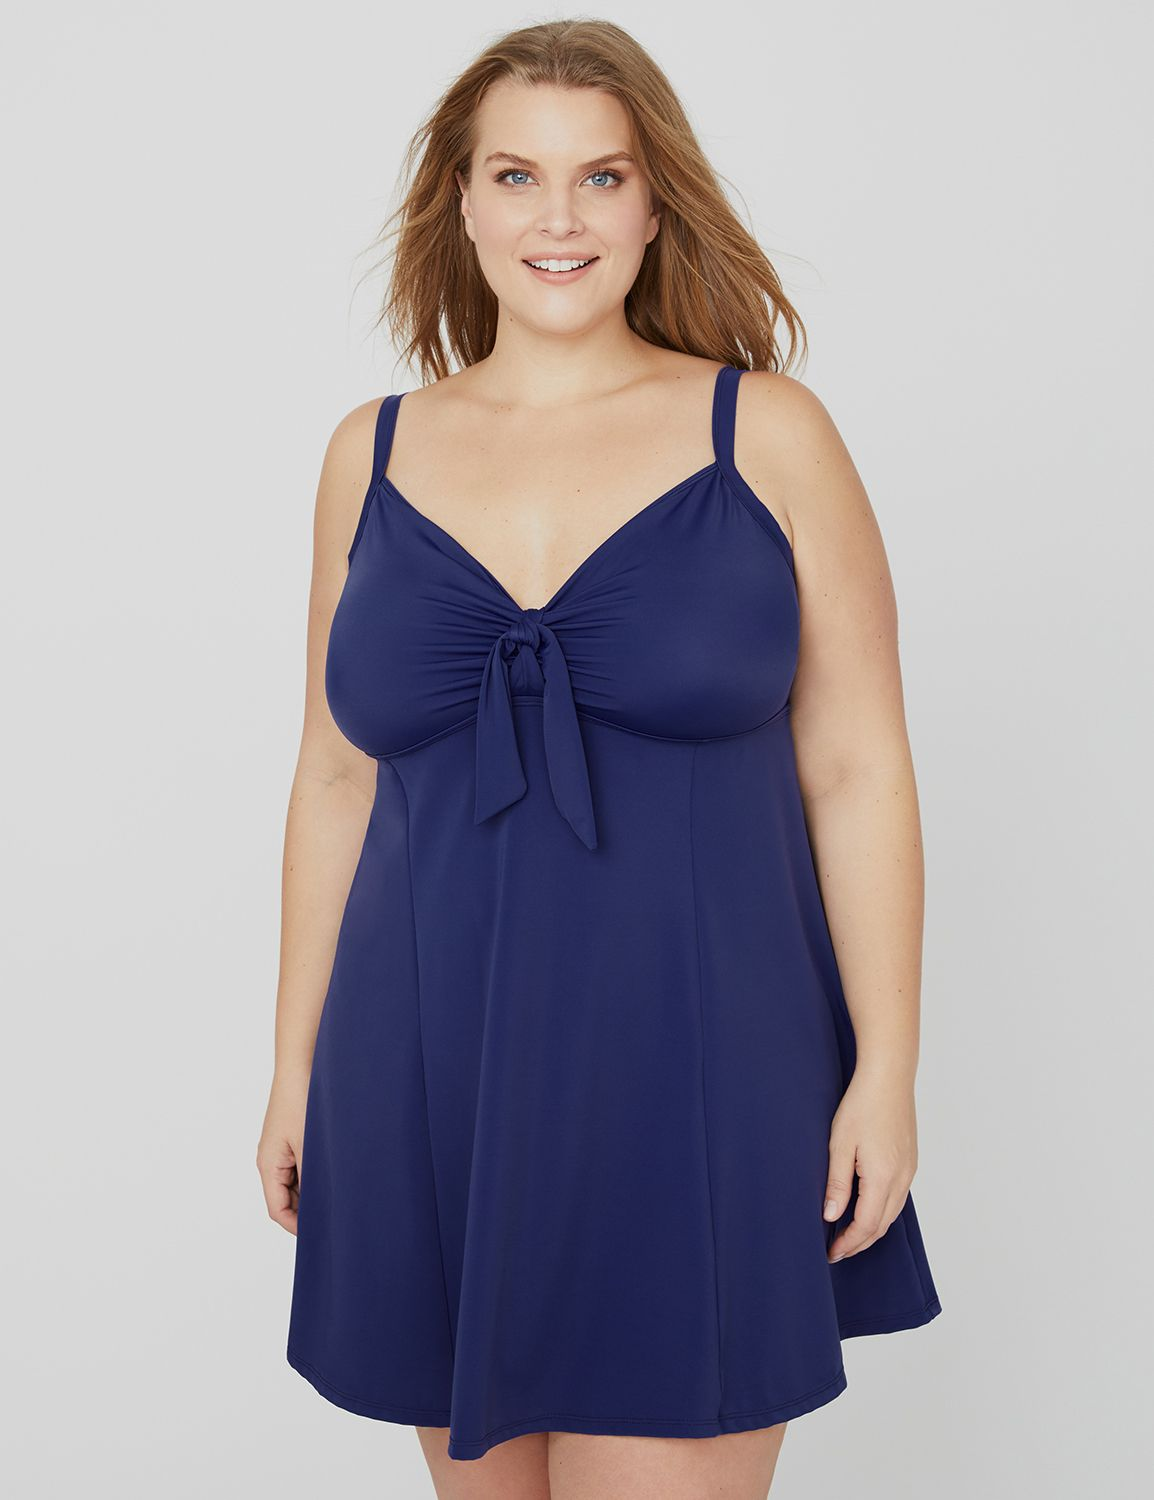 Sugar Hollow Swimdress Tie Front Swim Dress MP-300094188